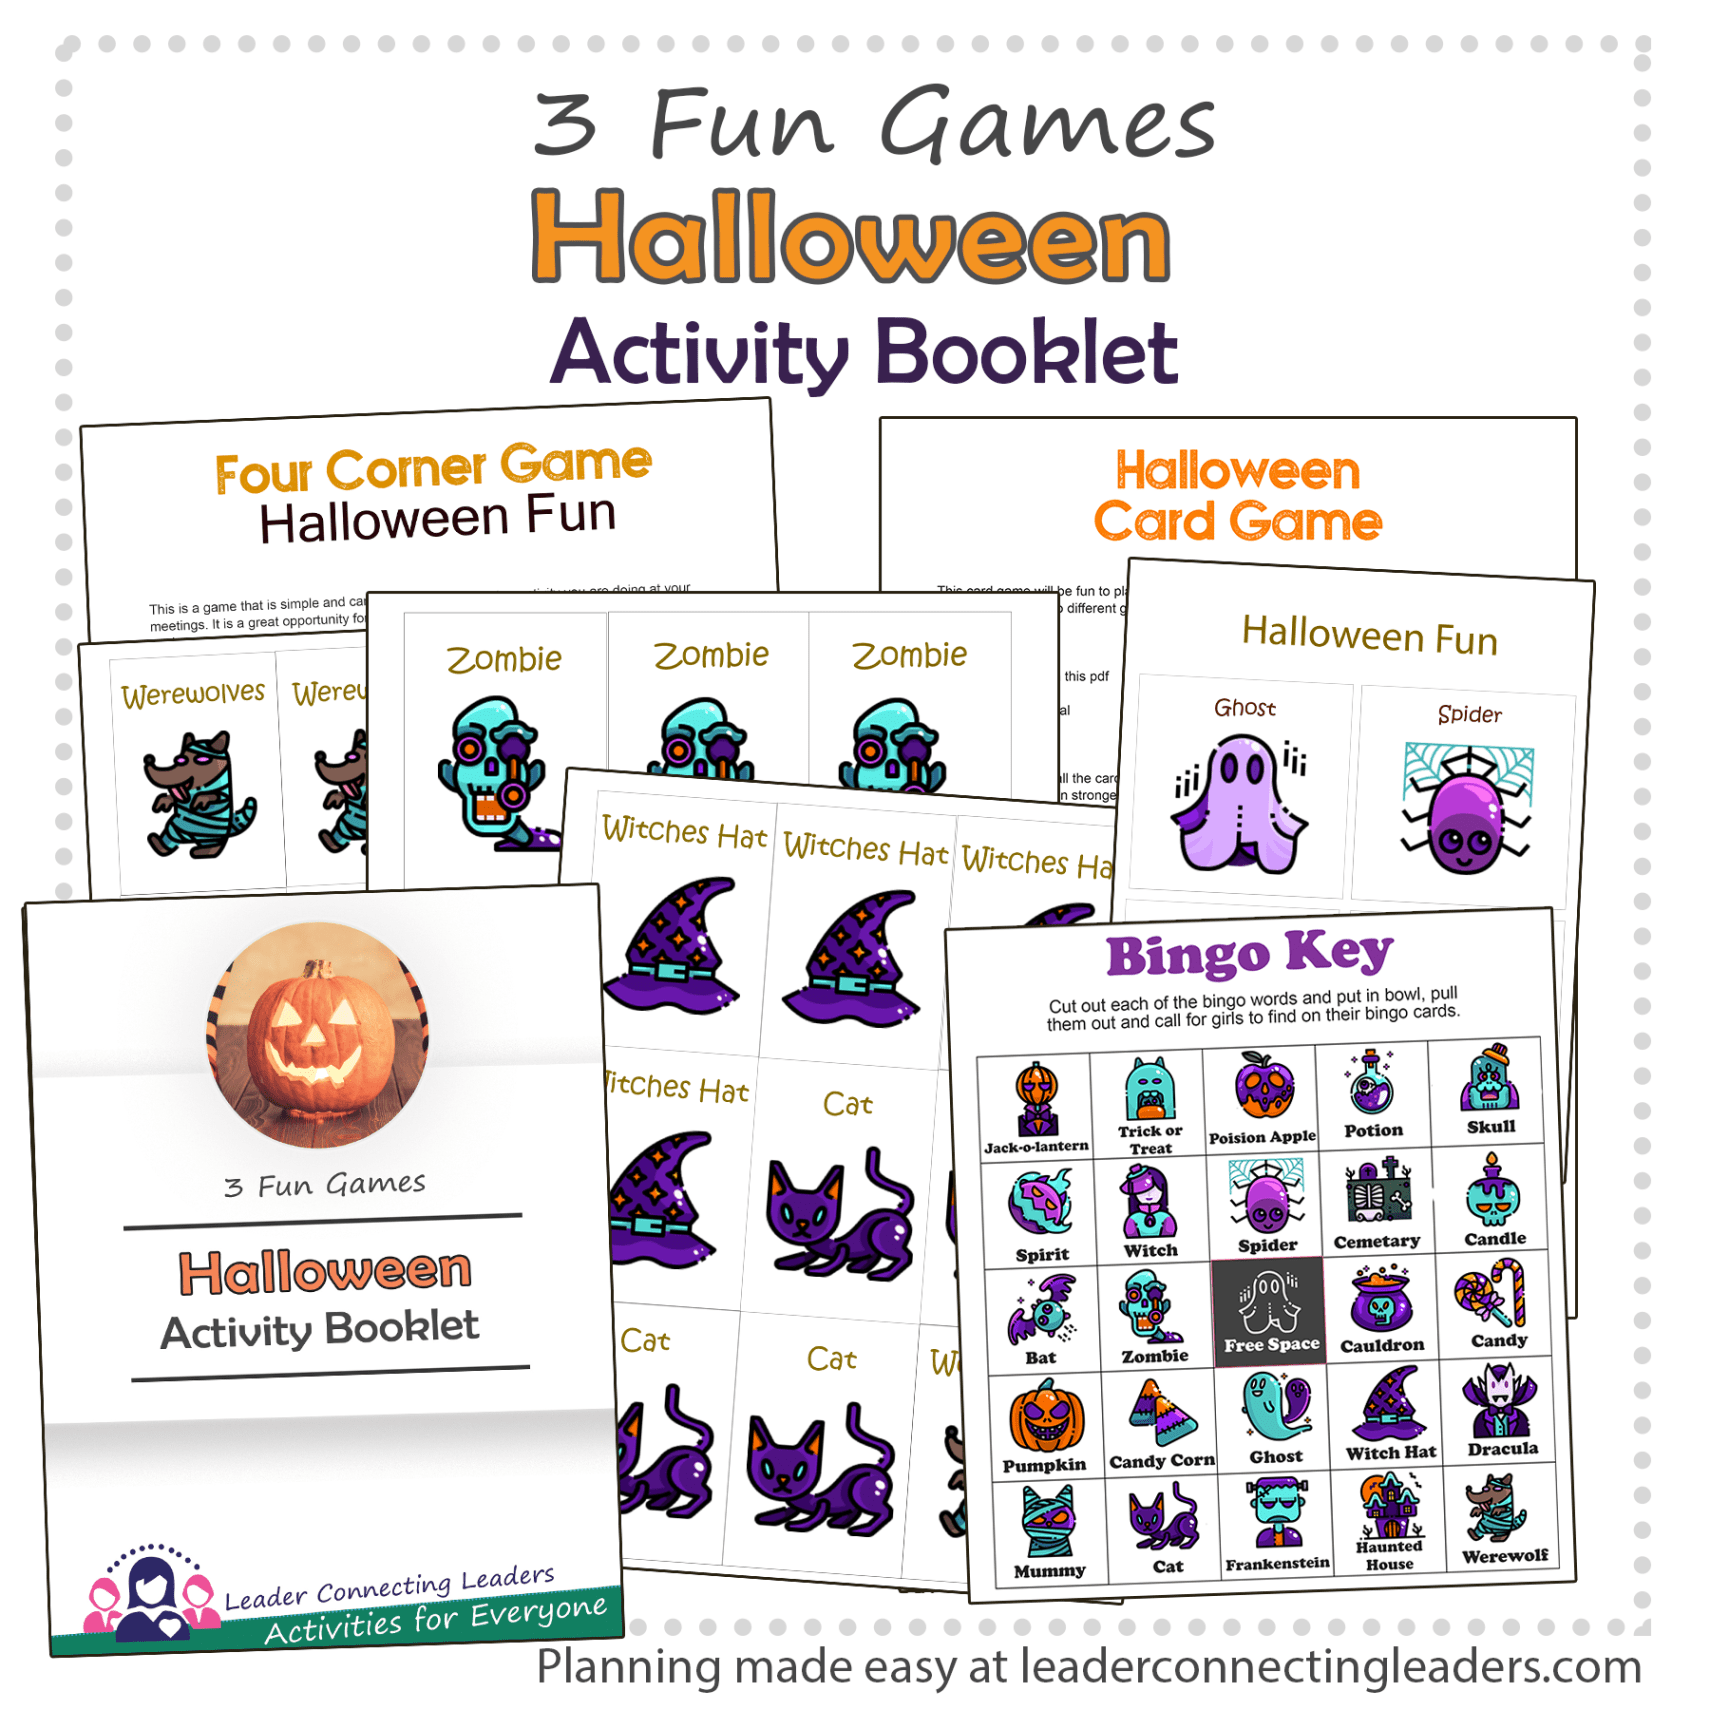 Halloween Bingo, Card and 4 Corner Game Activity Booklet